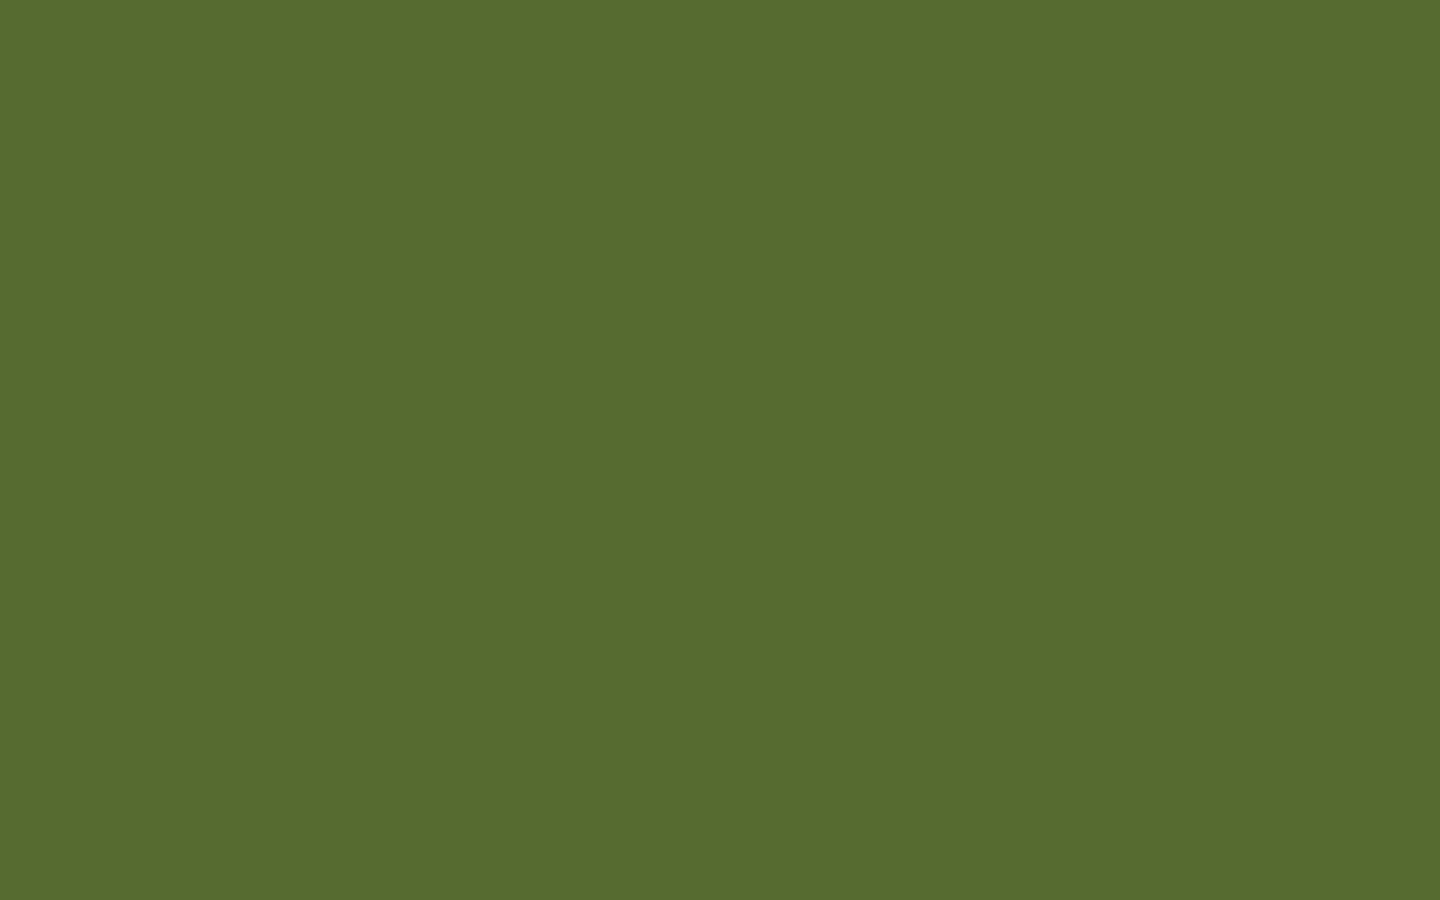 1440x900 Dark Olive Green Solid Color Background